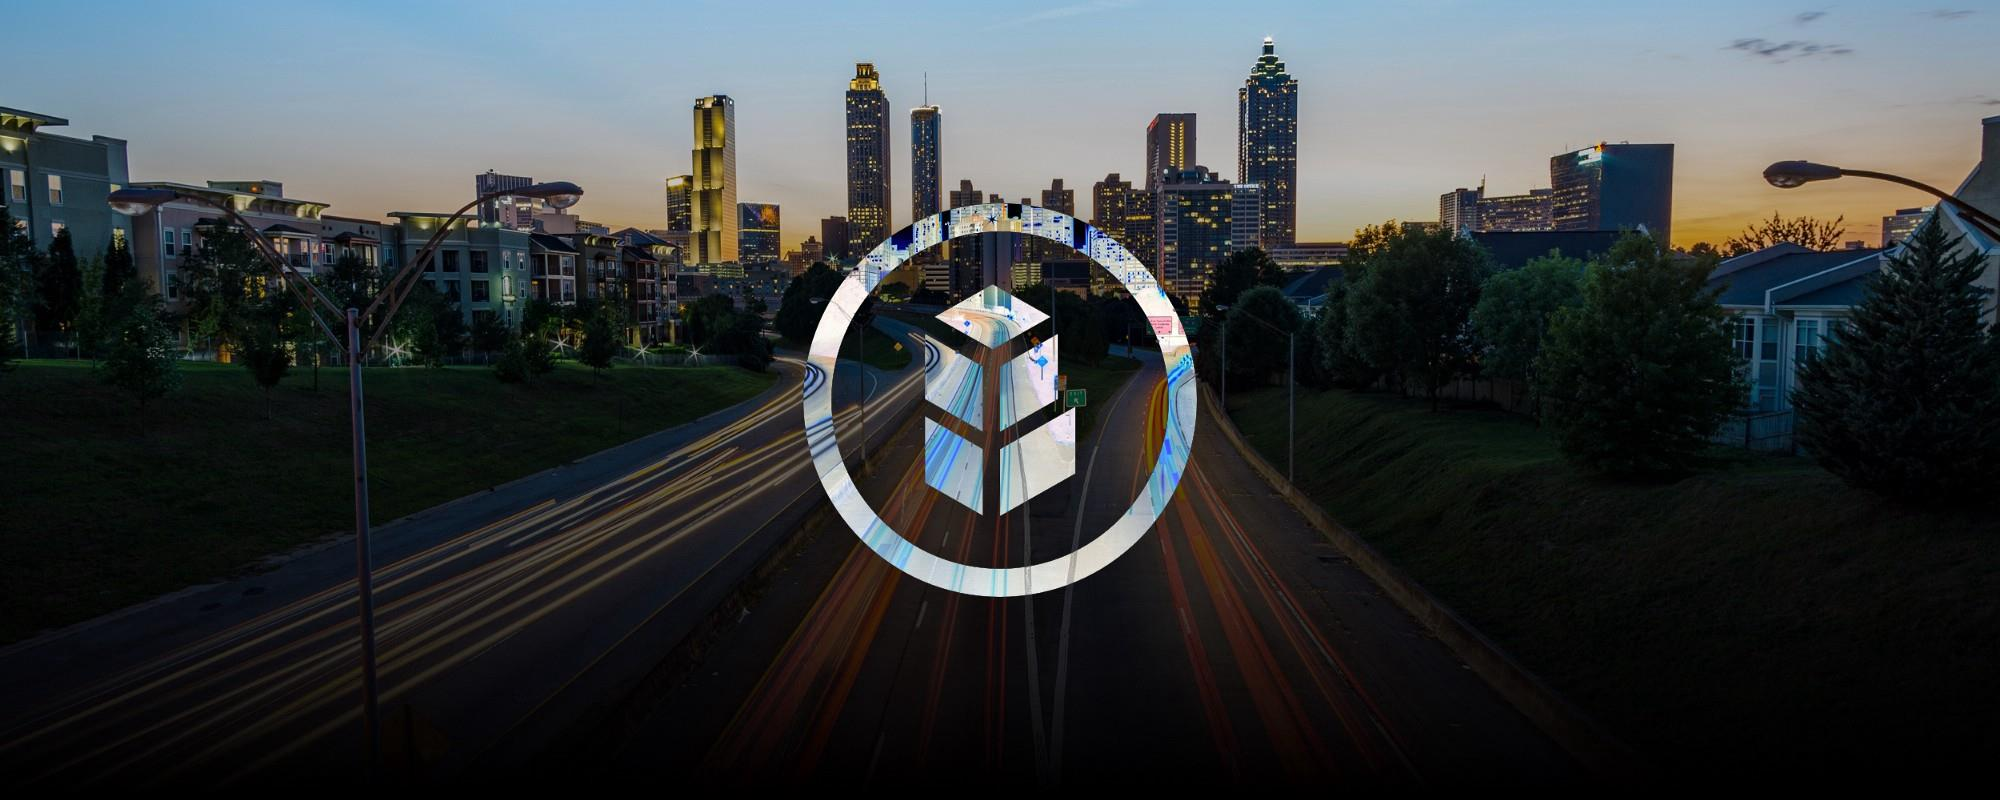 Network effect, liquid and smart tokens… or how does the Bancor protocol work?